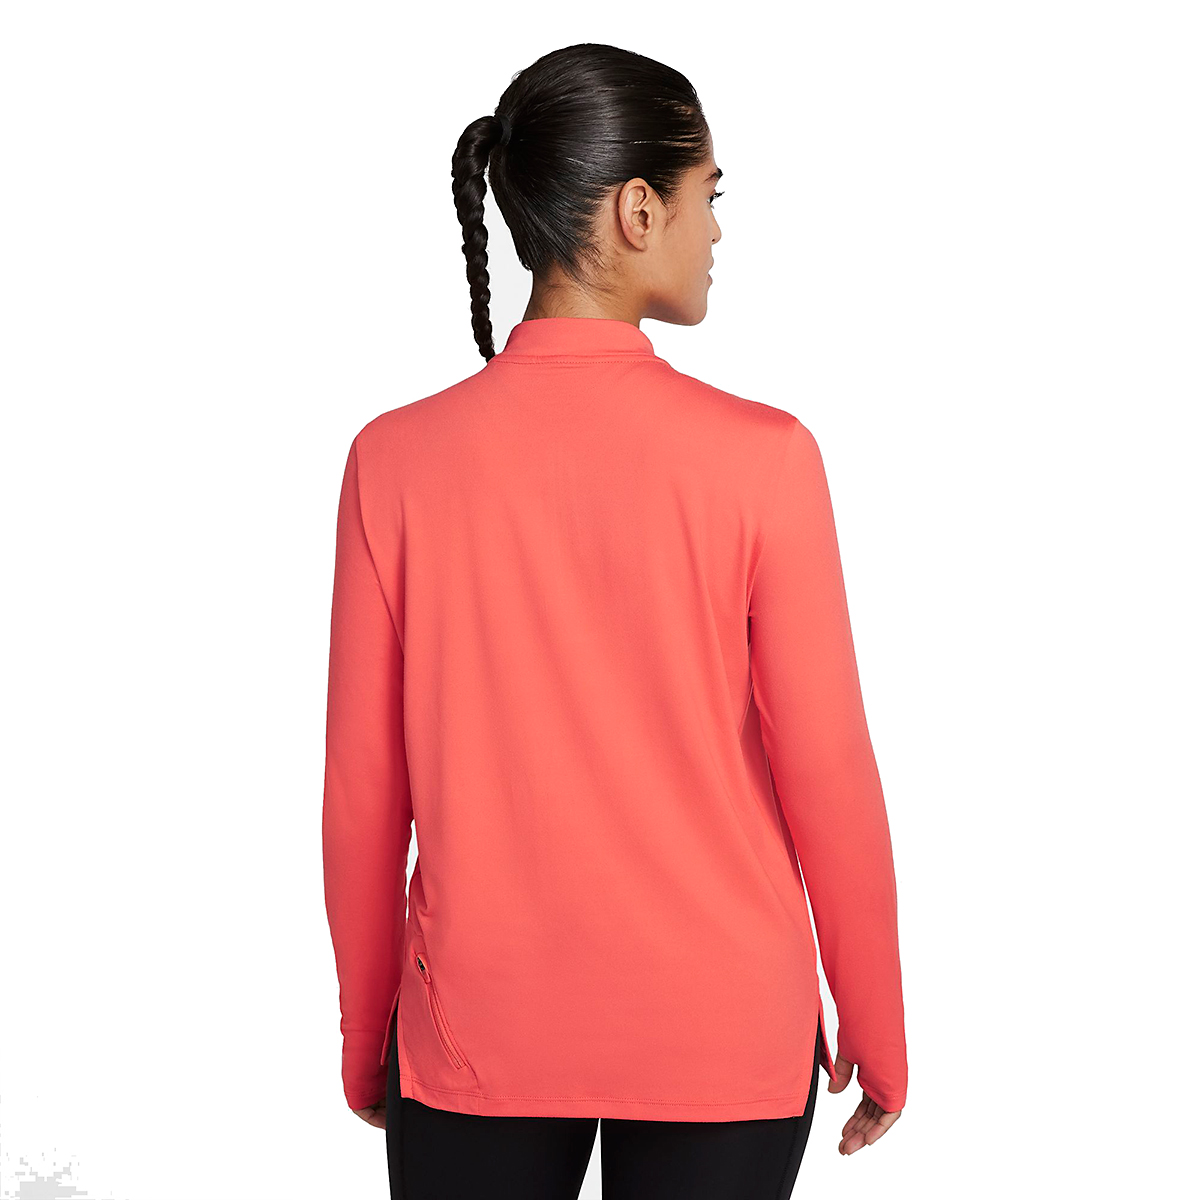 Women's Nike Element Trail Running Midlayer - Color: Magic Ember/Reflective Silver - Size: XS, Magic Ember/Reflective Silver, large, image 2